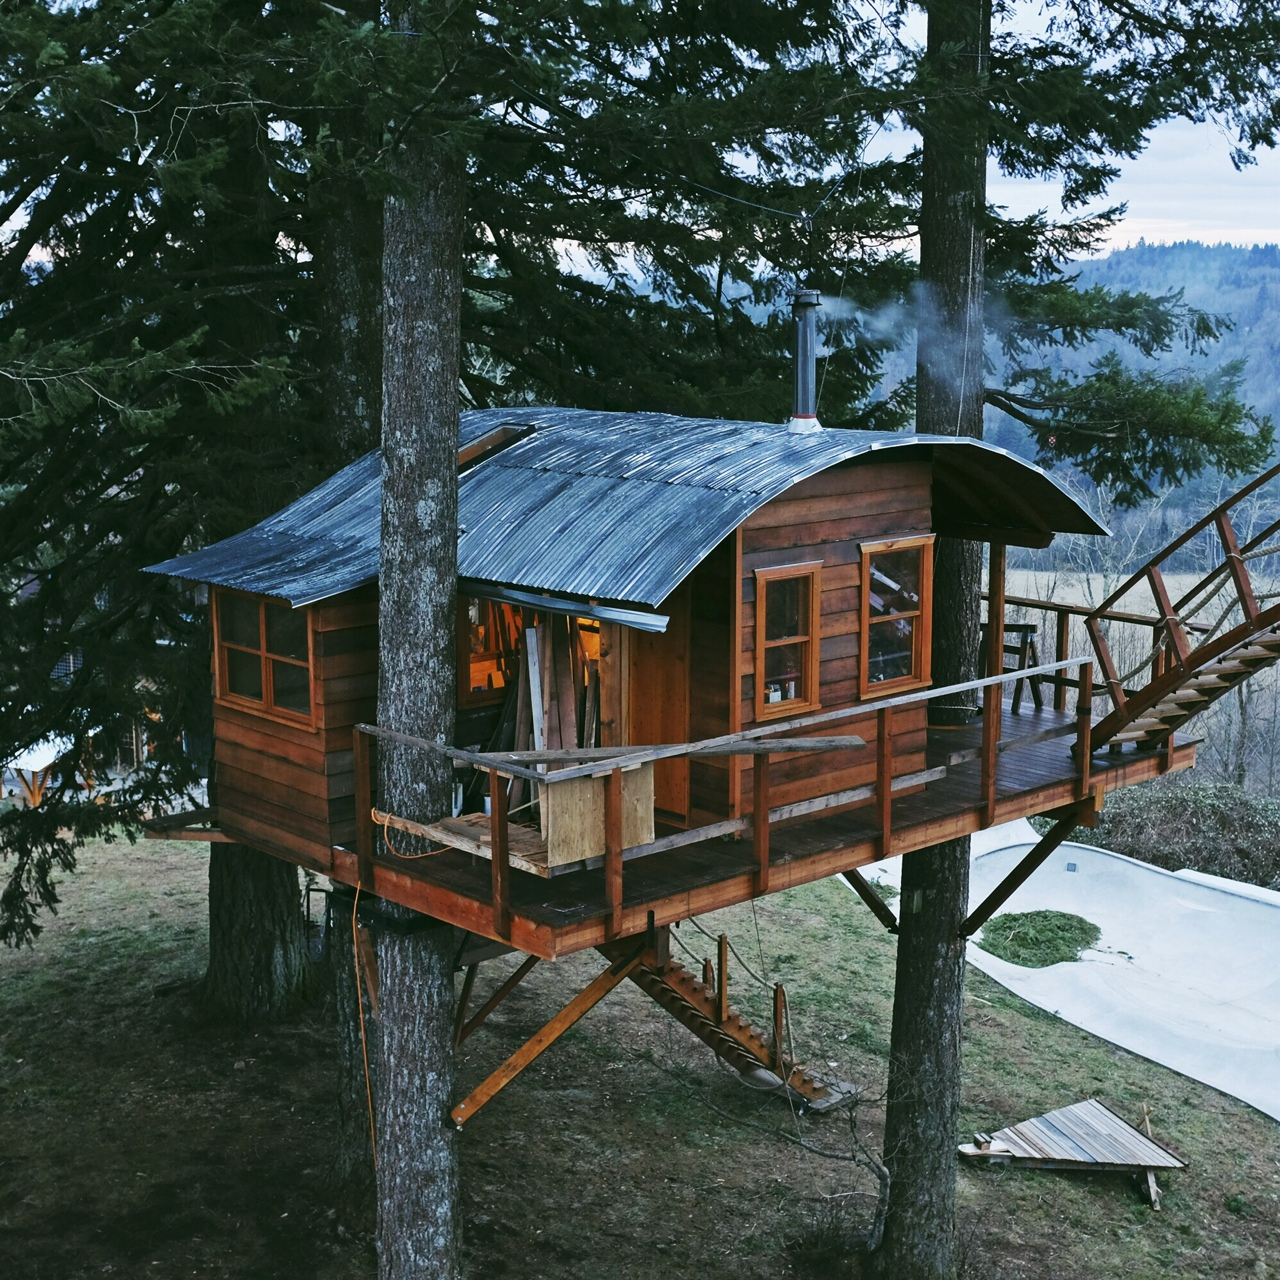 Cinder Cone Off Grid Tree Houses Keep Dreams Alive